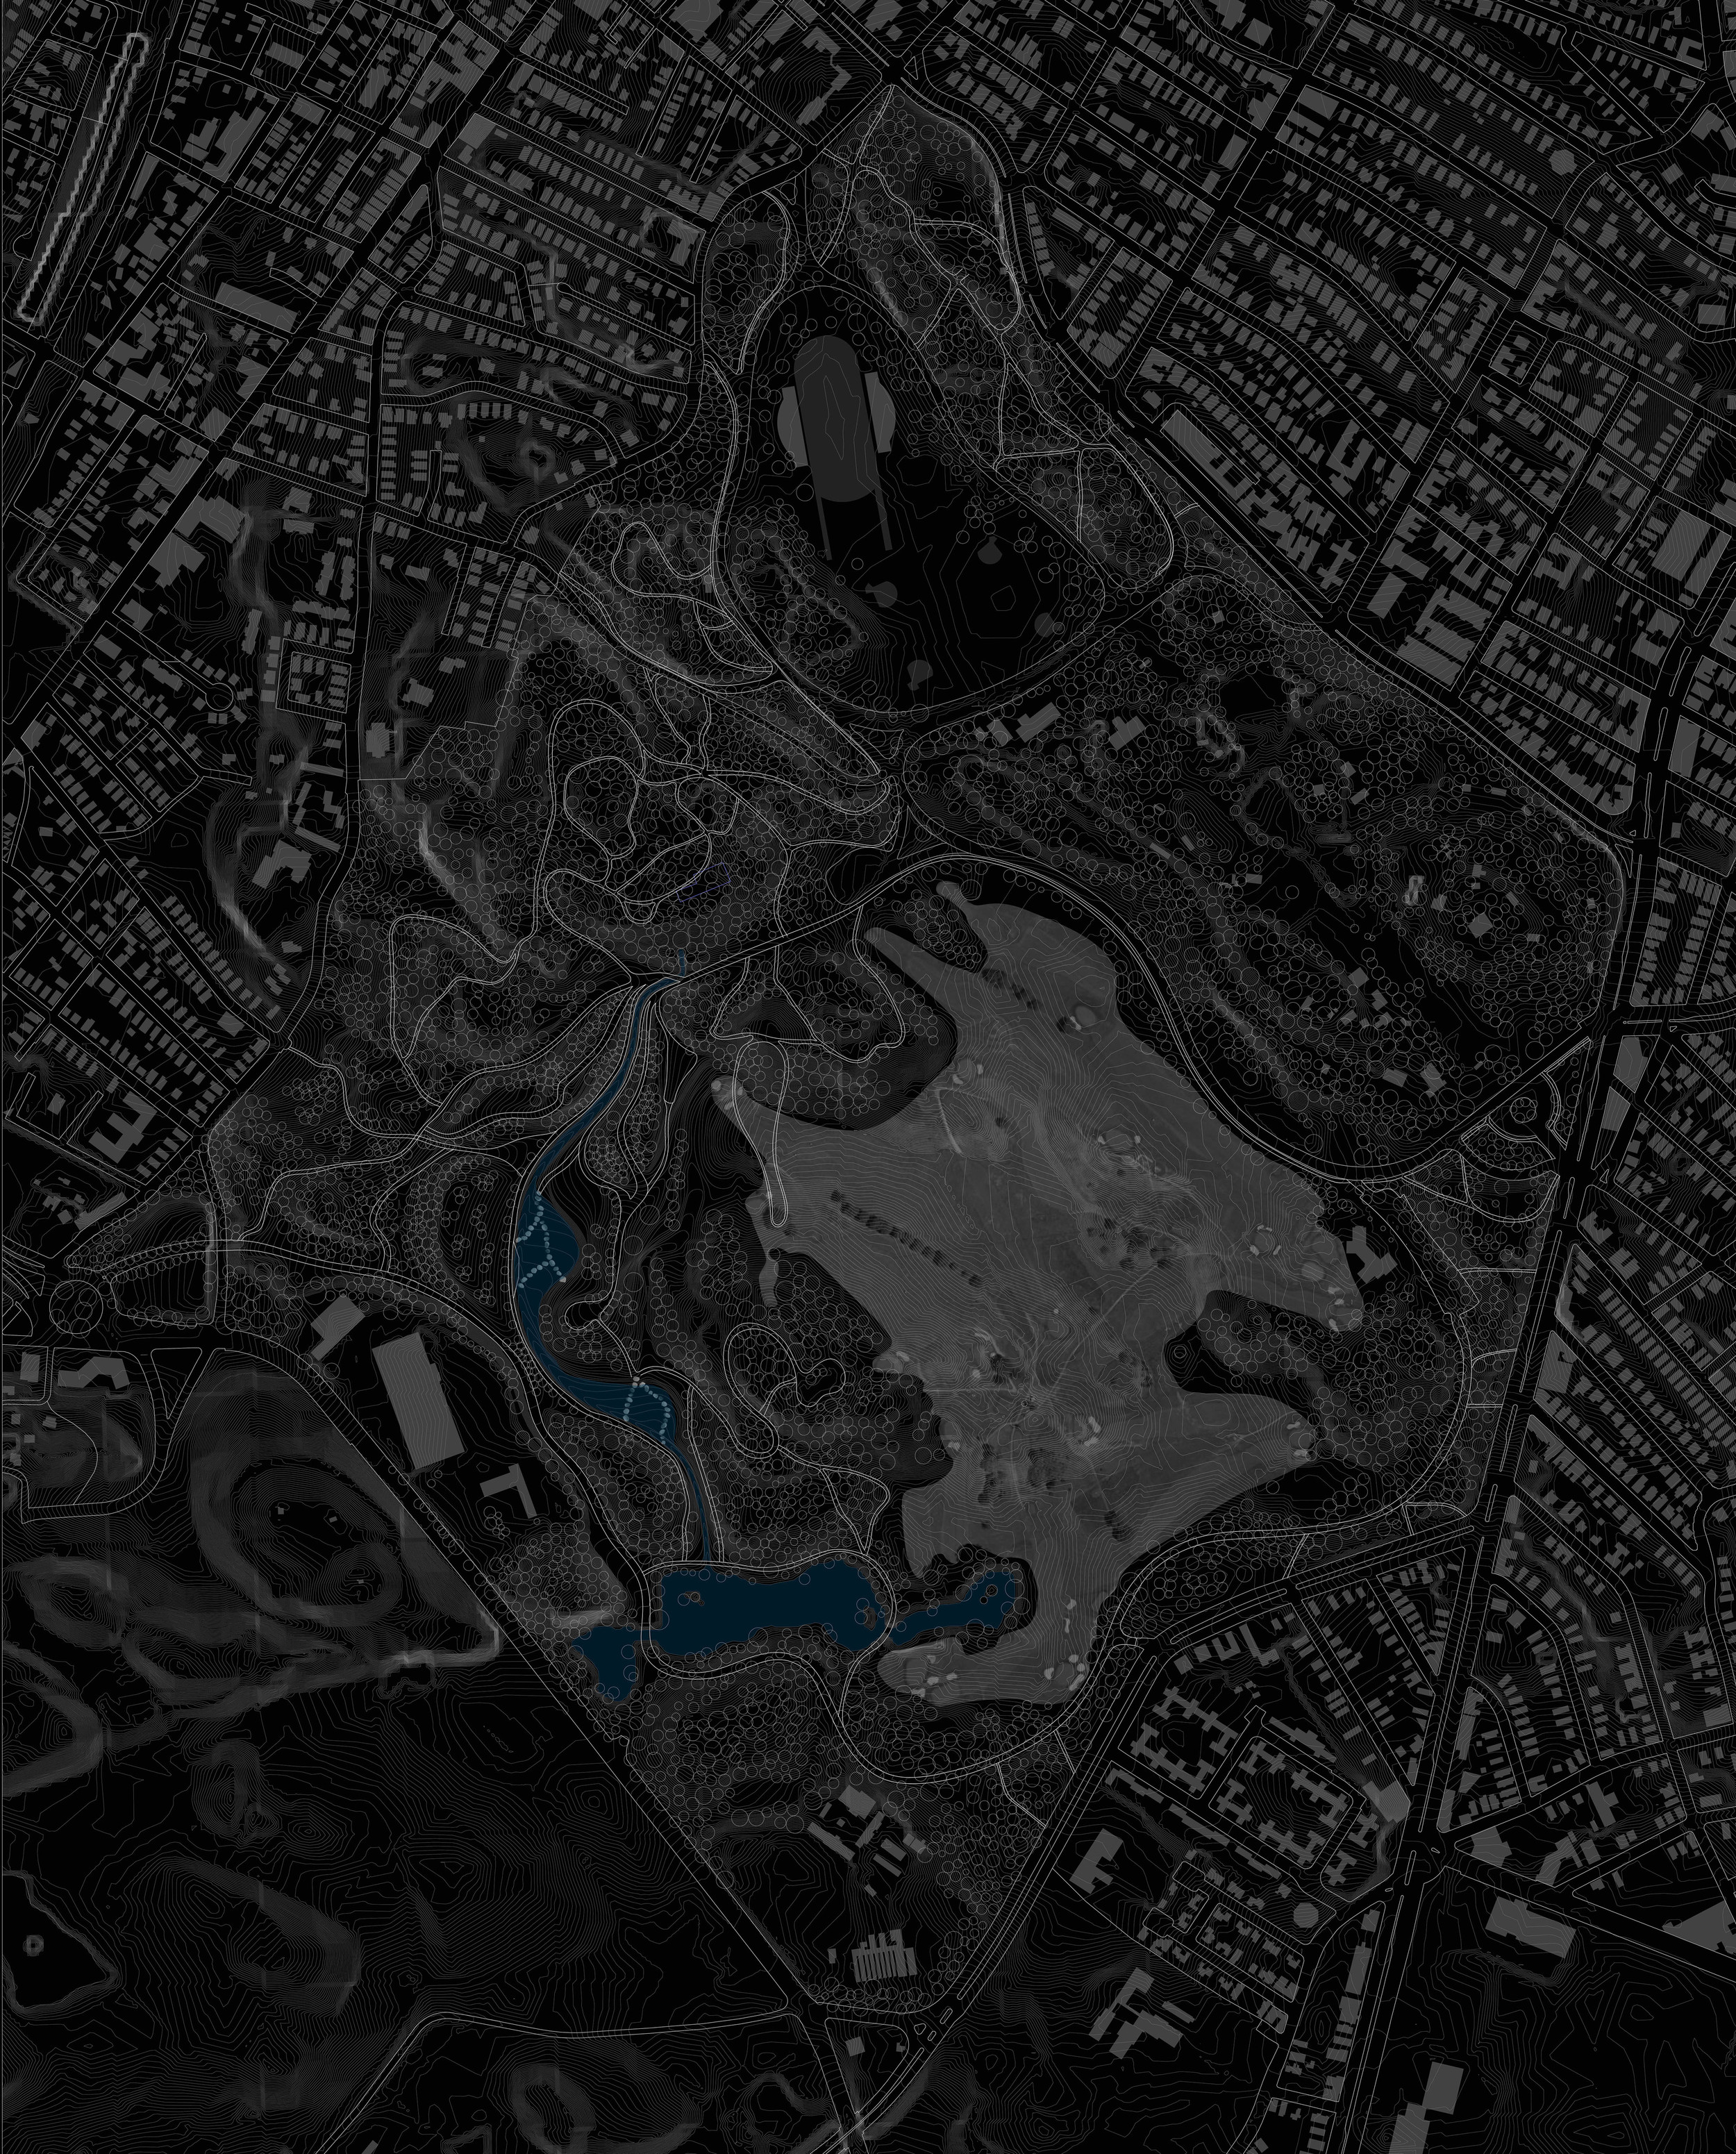 Masterplan of Franklin Park shows the extend of the stream.